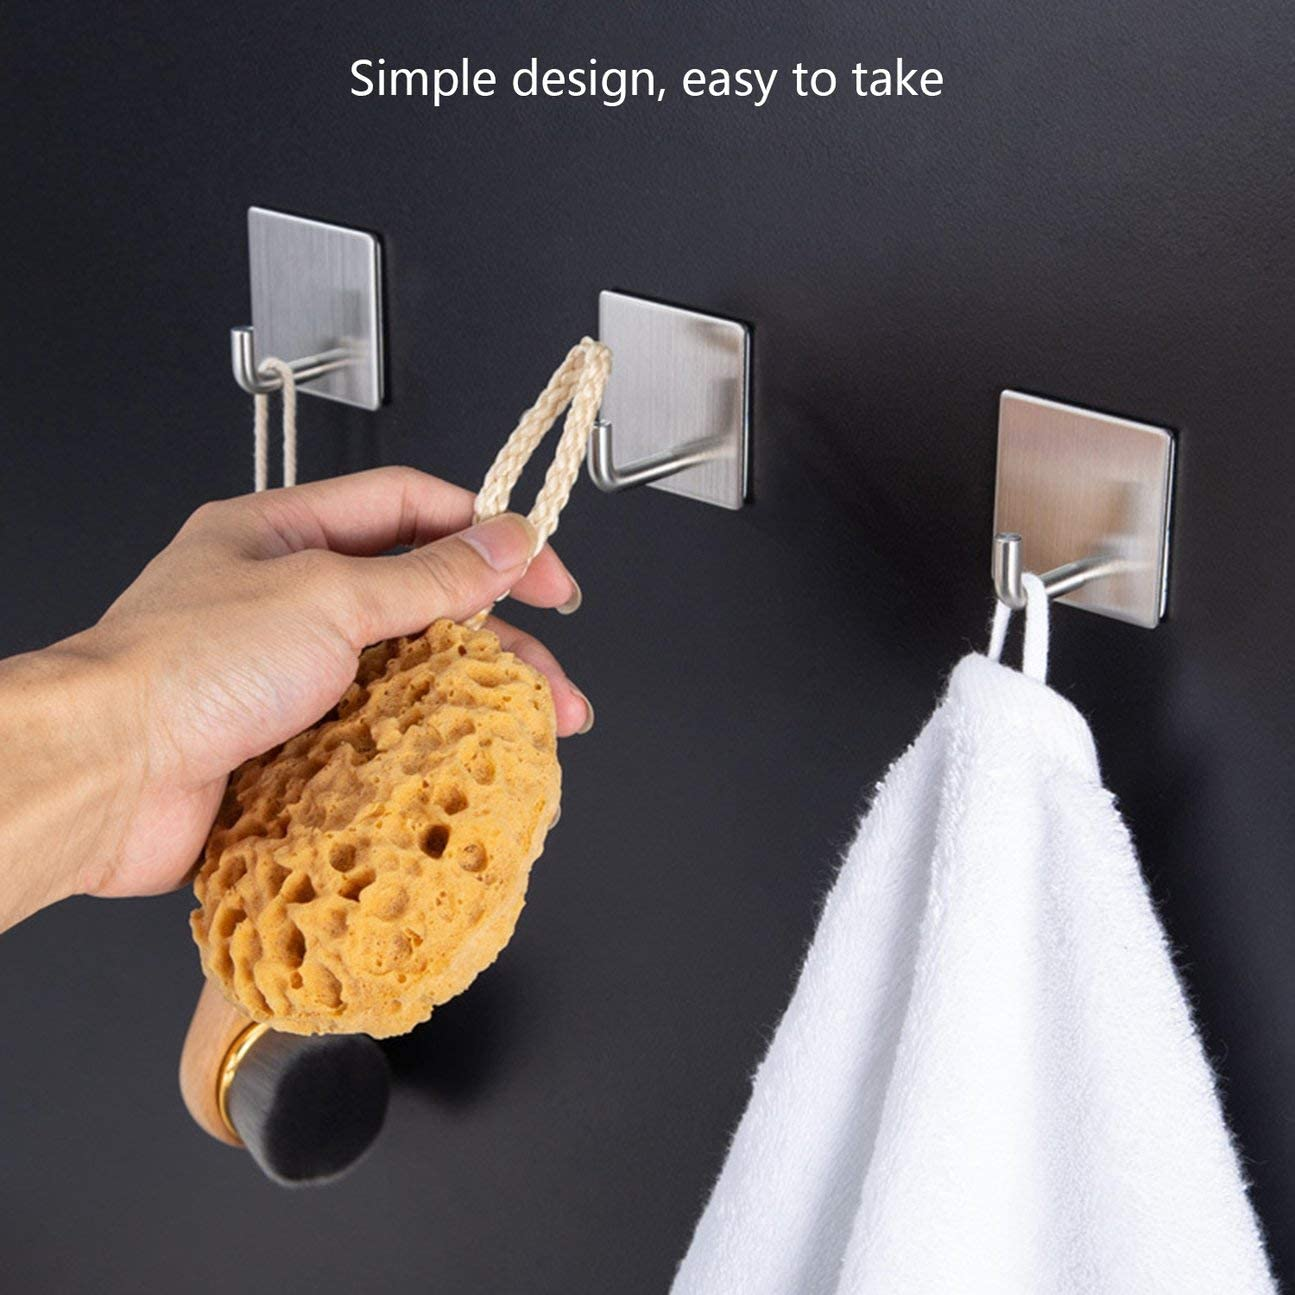 color:Sliver Wall Hooks Heavy Duty Wall Hangers Stainless Steel Waterproof Hooks for Robe Coat Towel MachinYester Adhesive Hooks